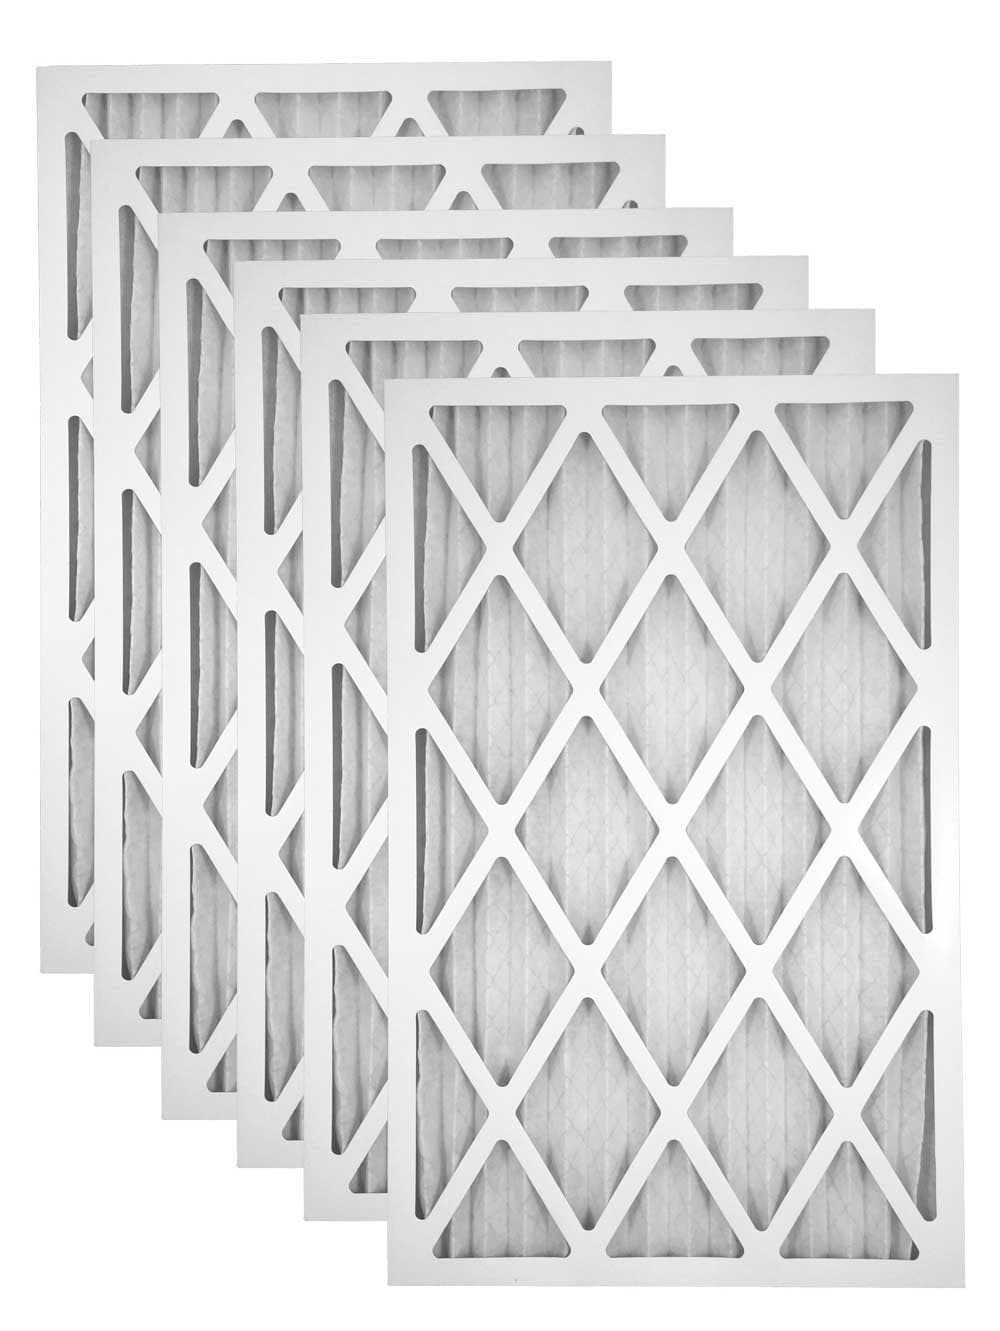 16x18x1 Merv 13 Pleated AC Furnace Filter - Case of 6